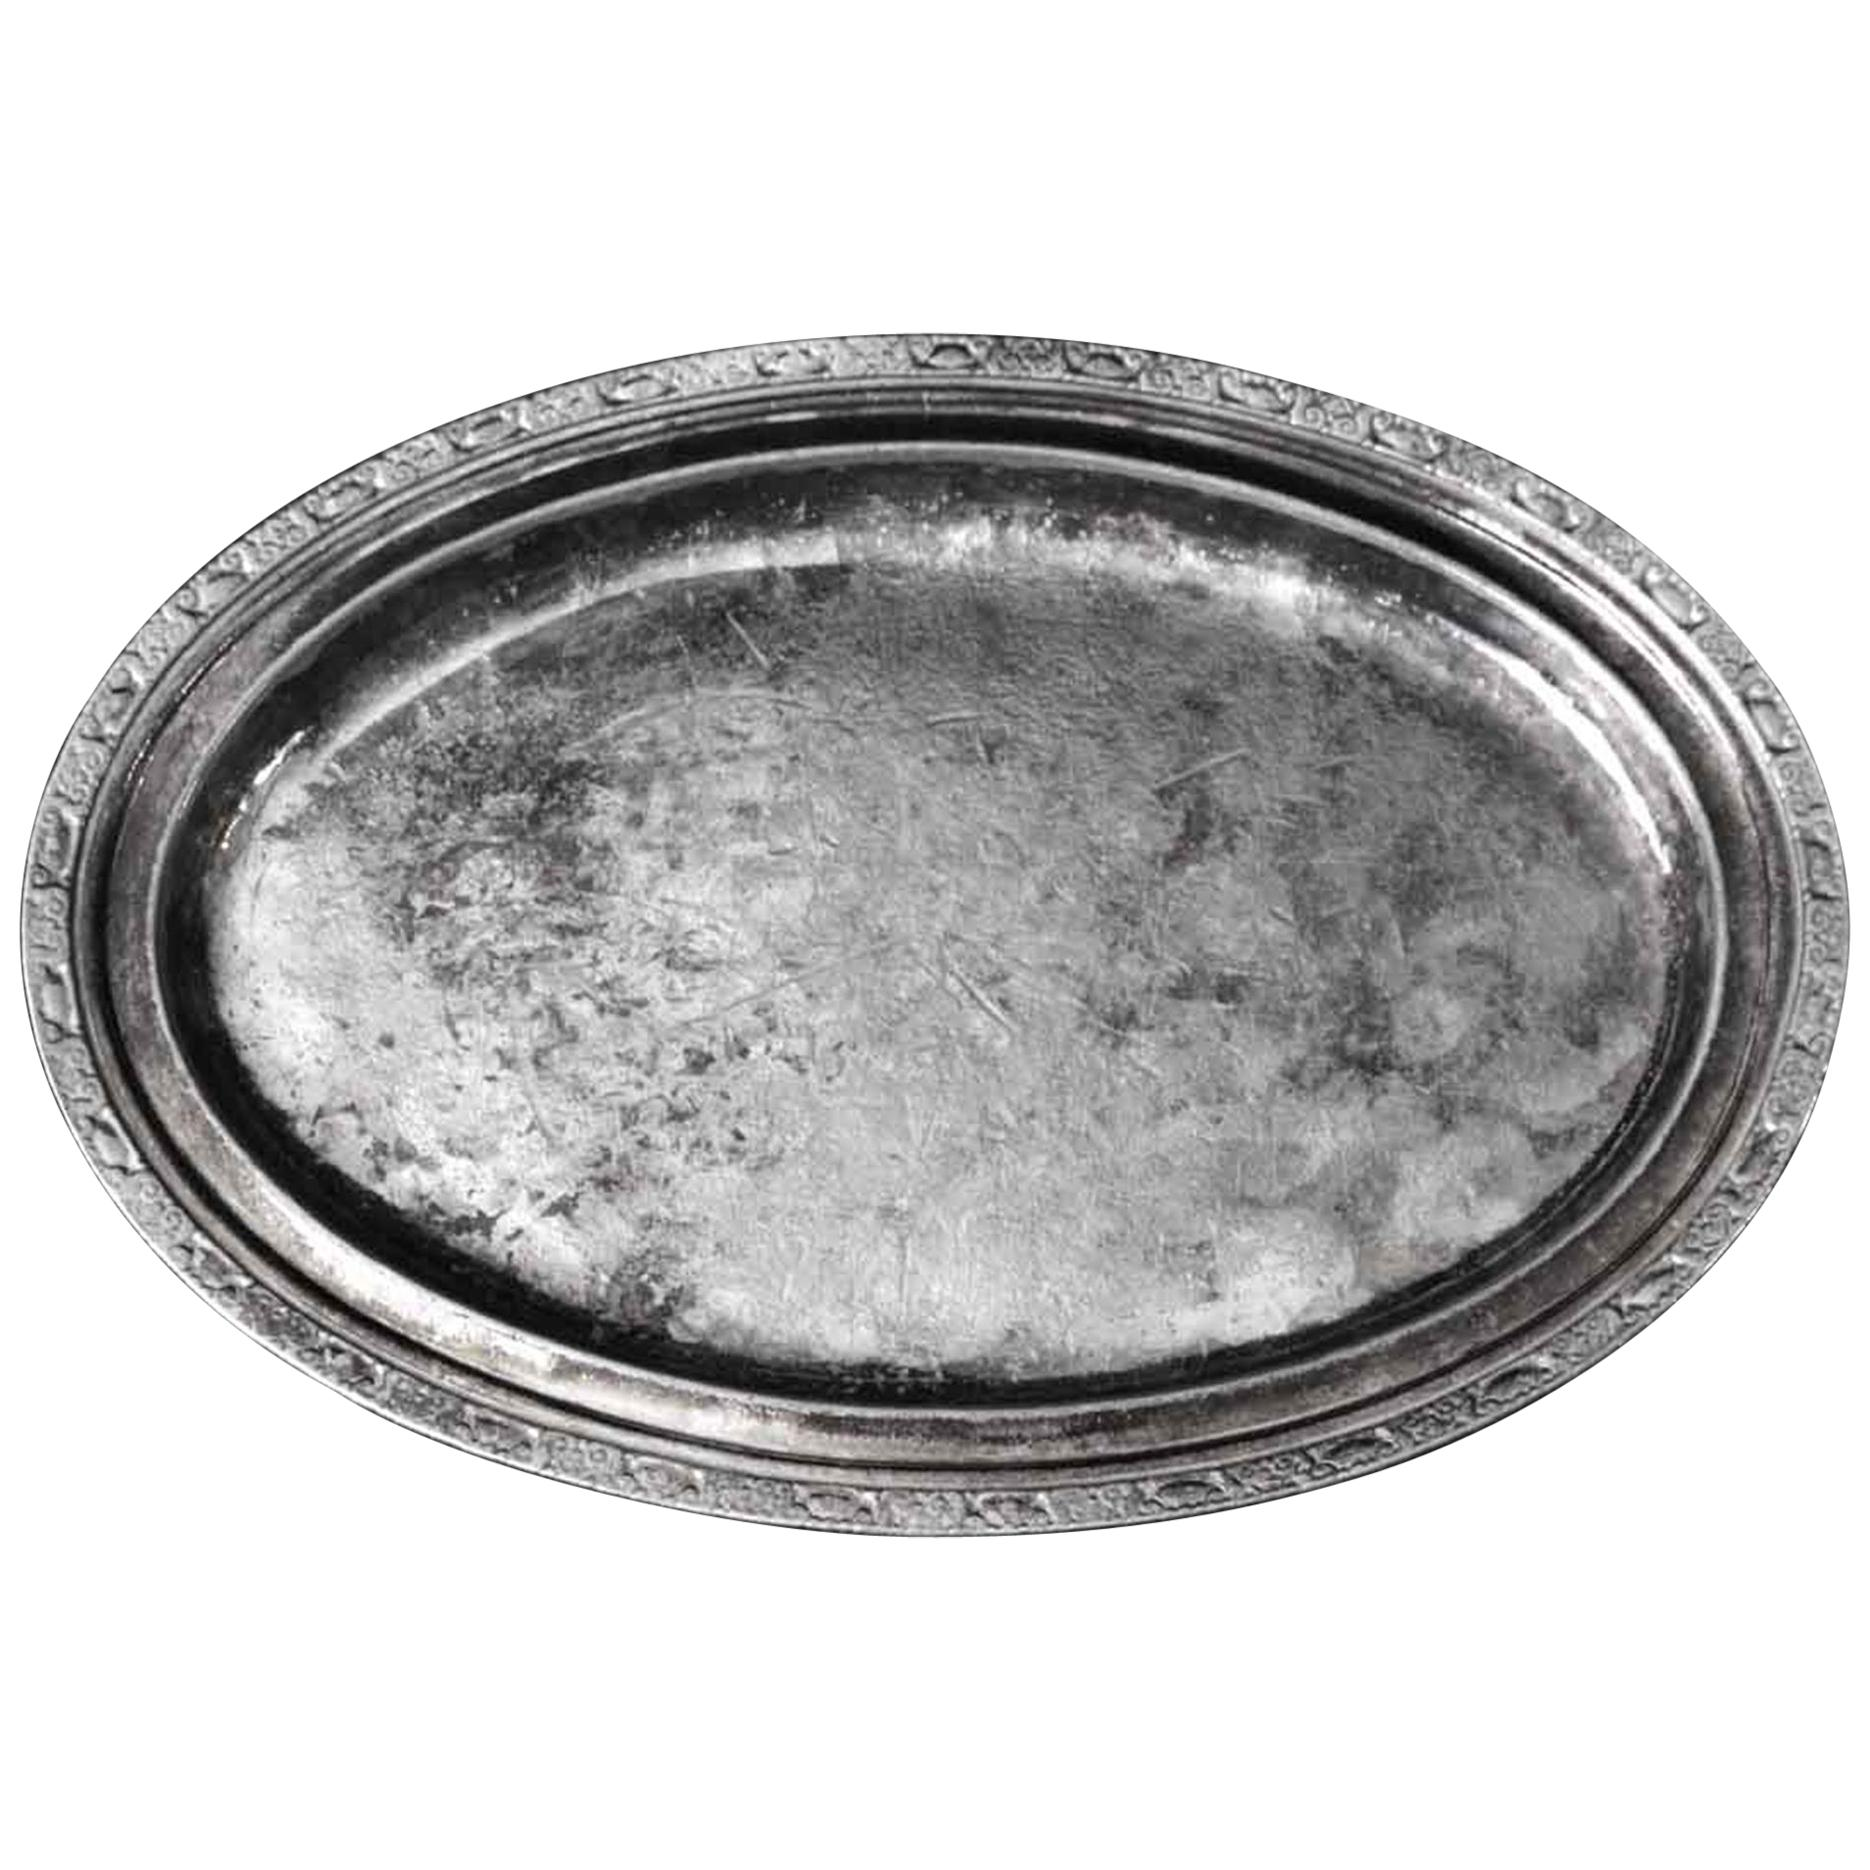 1931 NYC Waldorf Astoria Hotel Silver Plated Brass Art Deco Oval Serving Tray